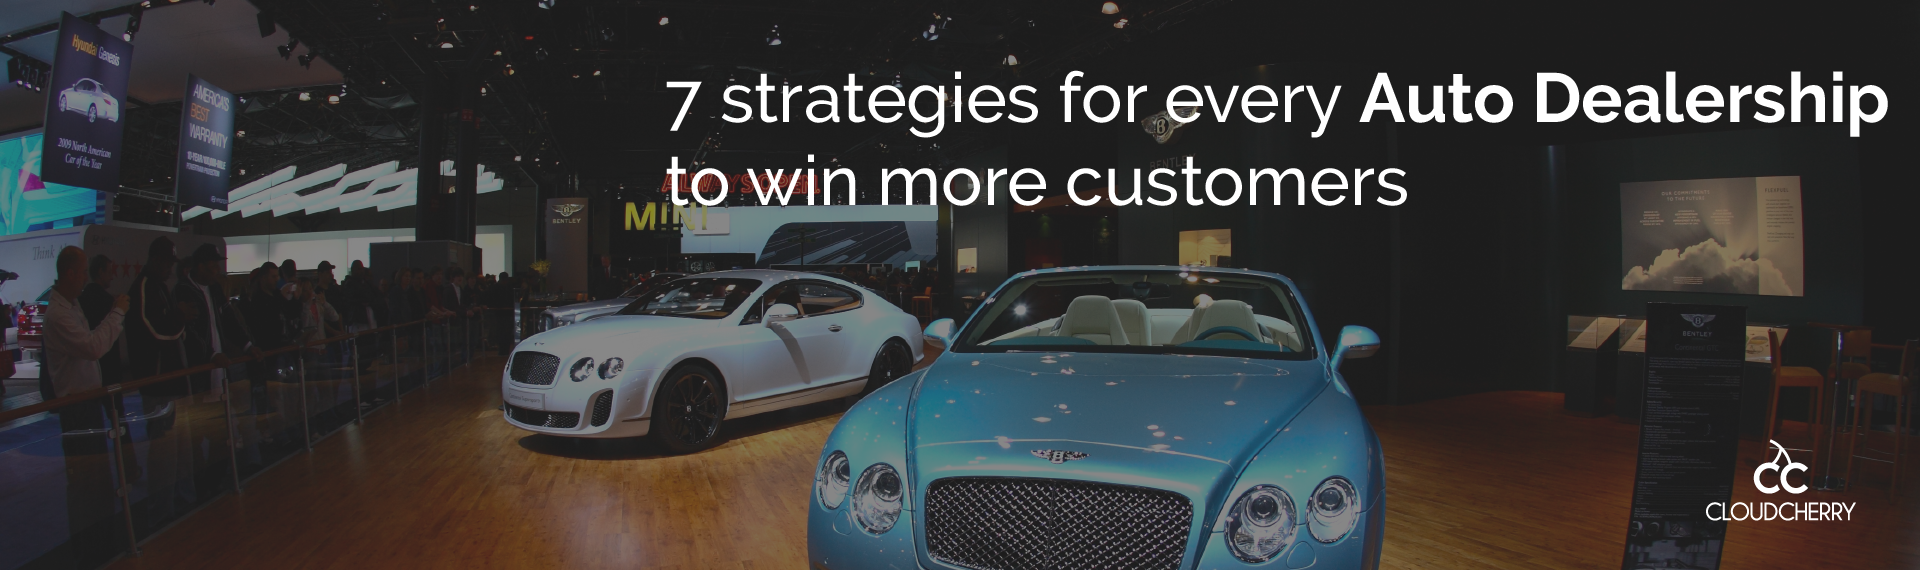 The 7 best business strategies for every auto dealership-01-01 (1)